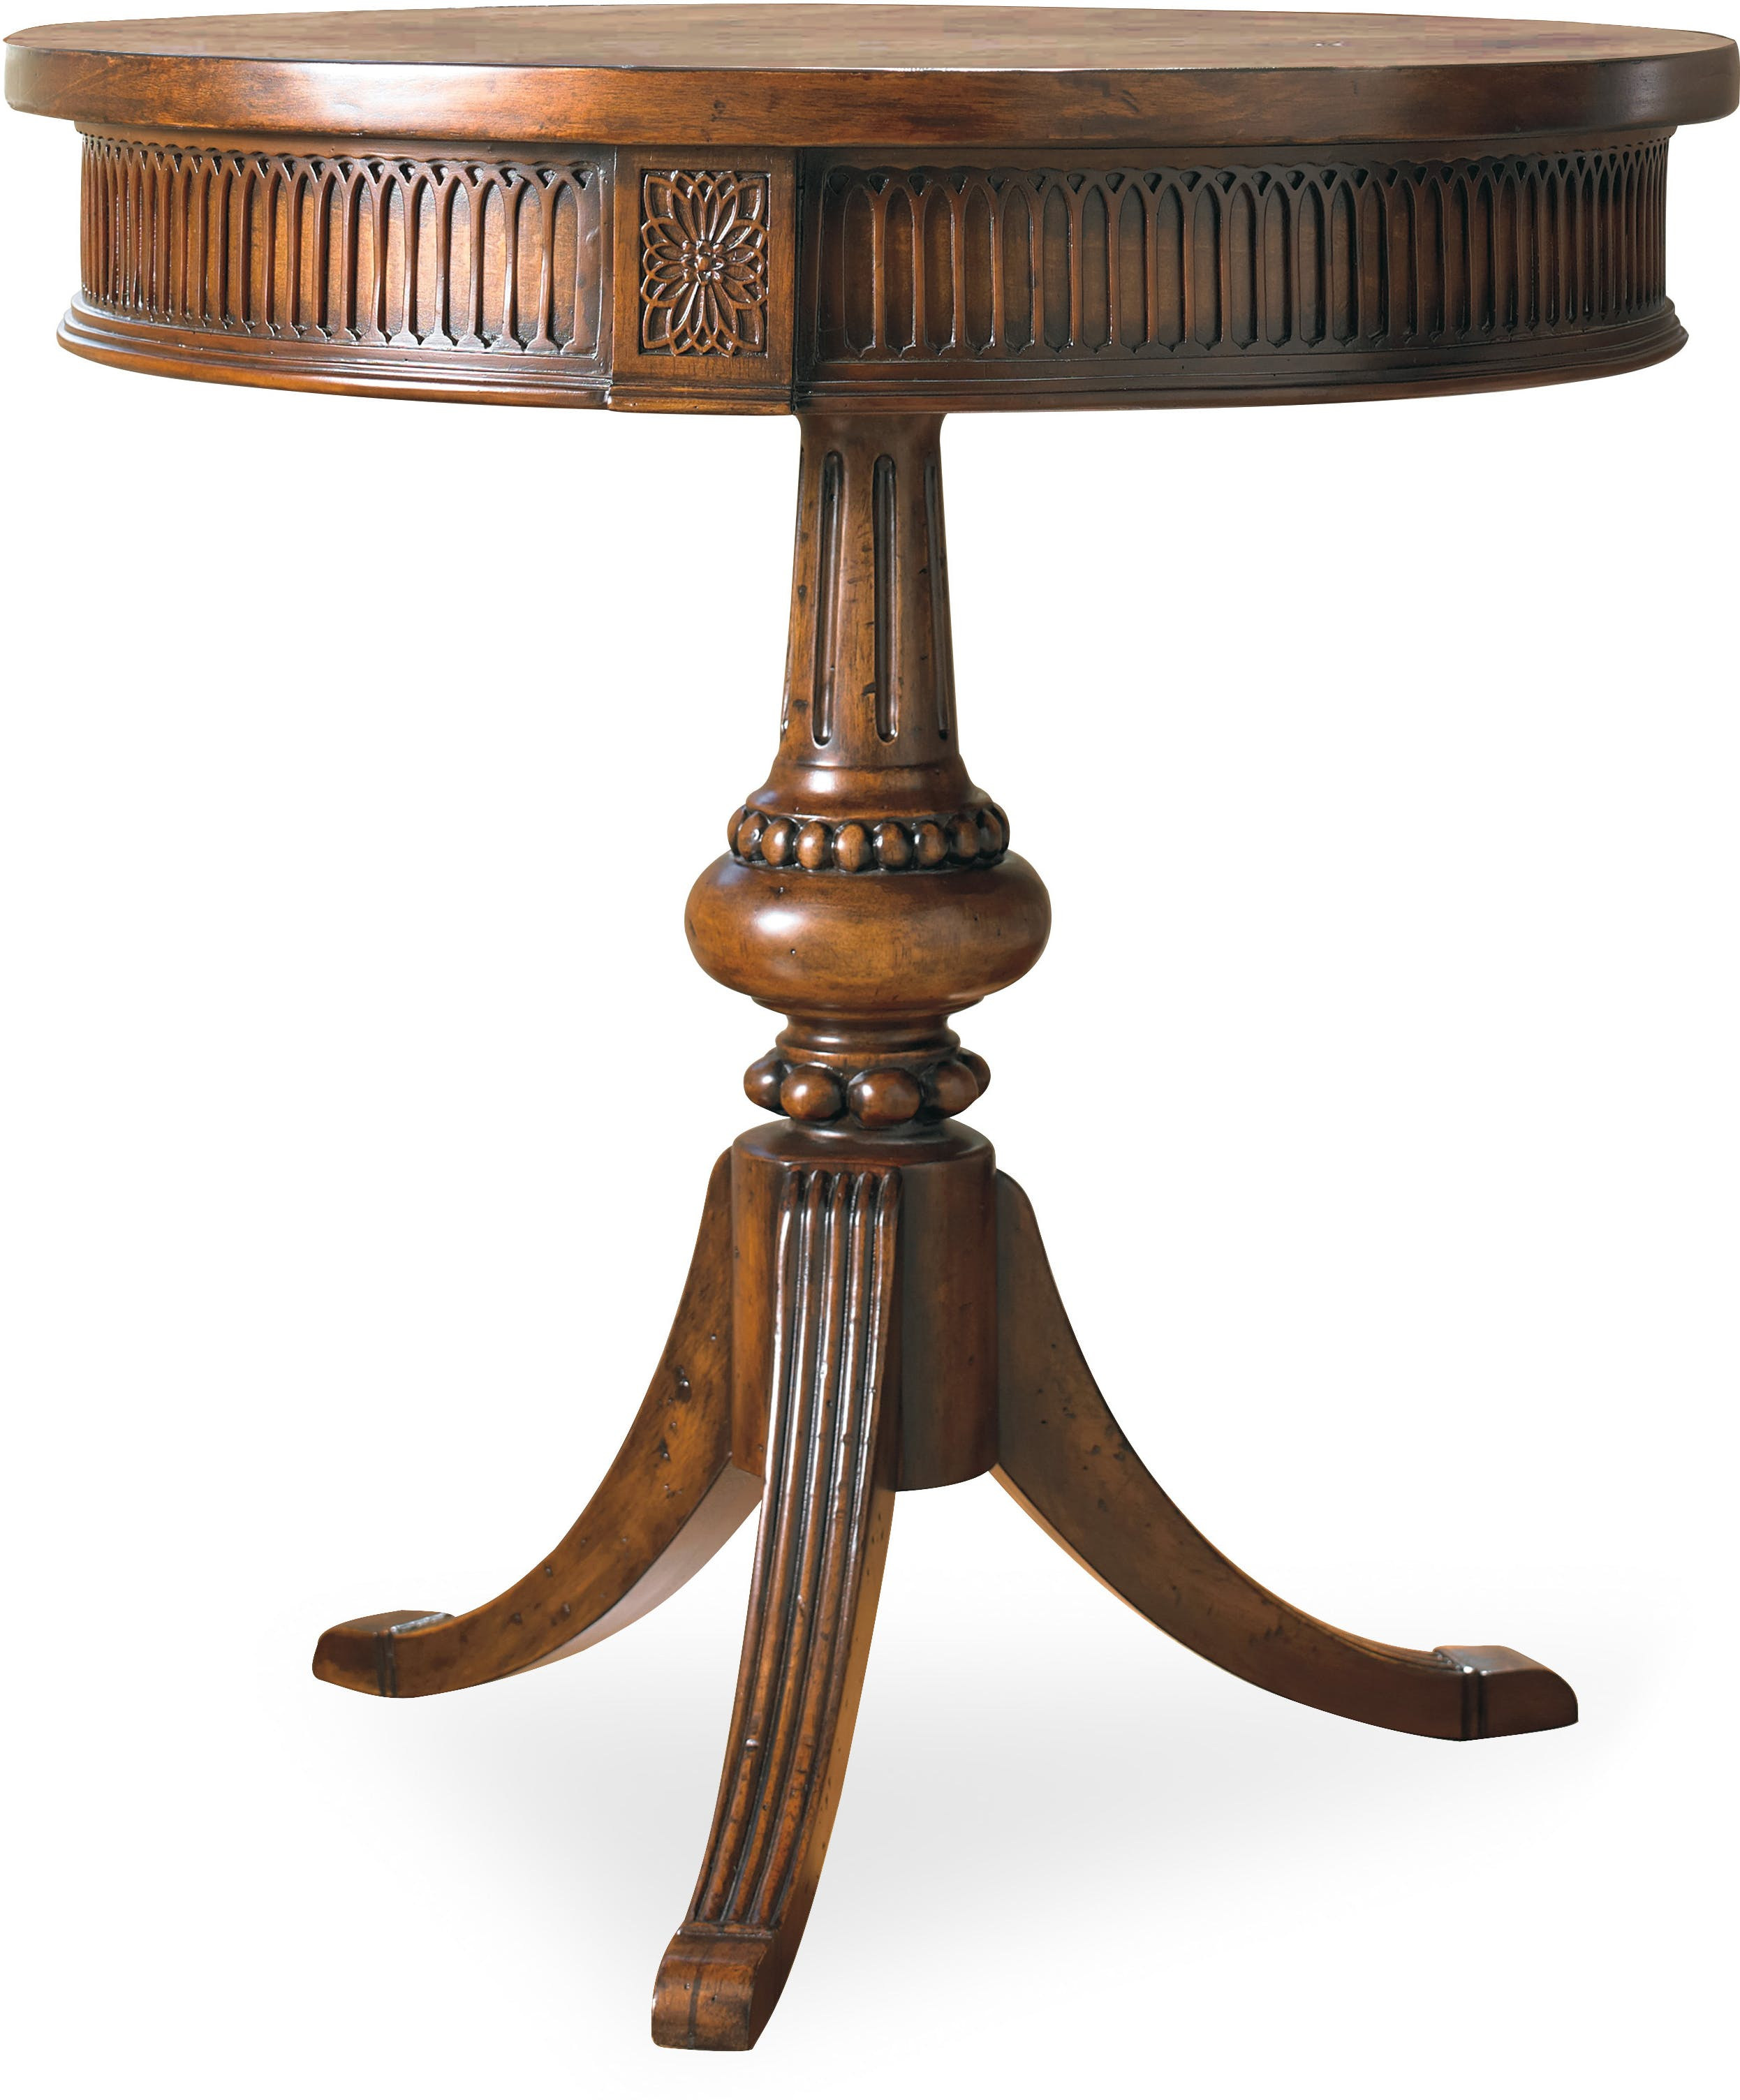 pedestal accent table within hooker furniture living room round design wood target high pub set marble tray hammered copper top end tables modern reproductions pier imports